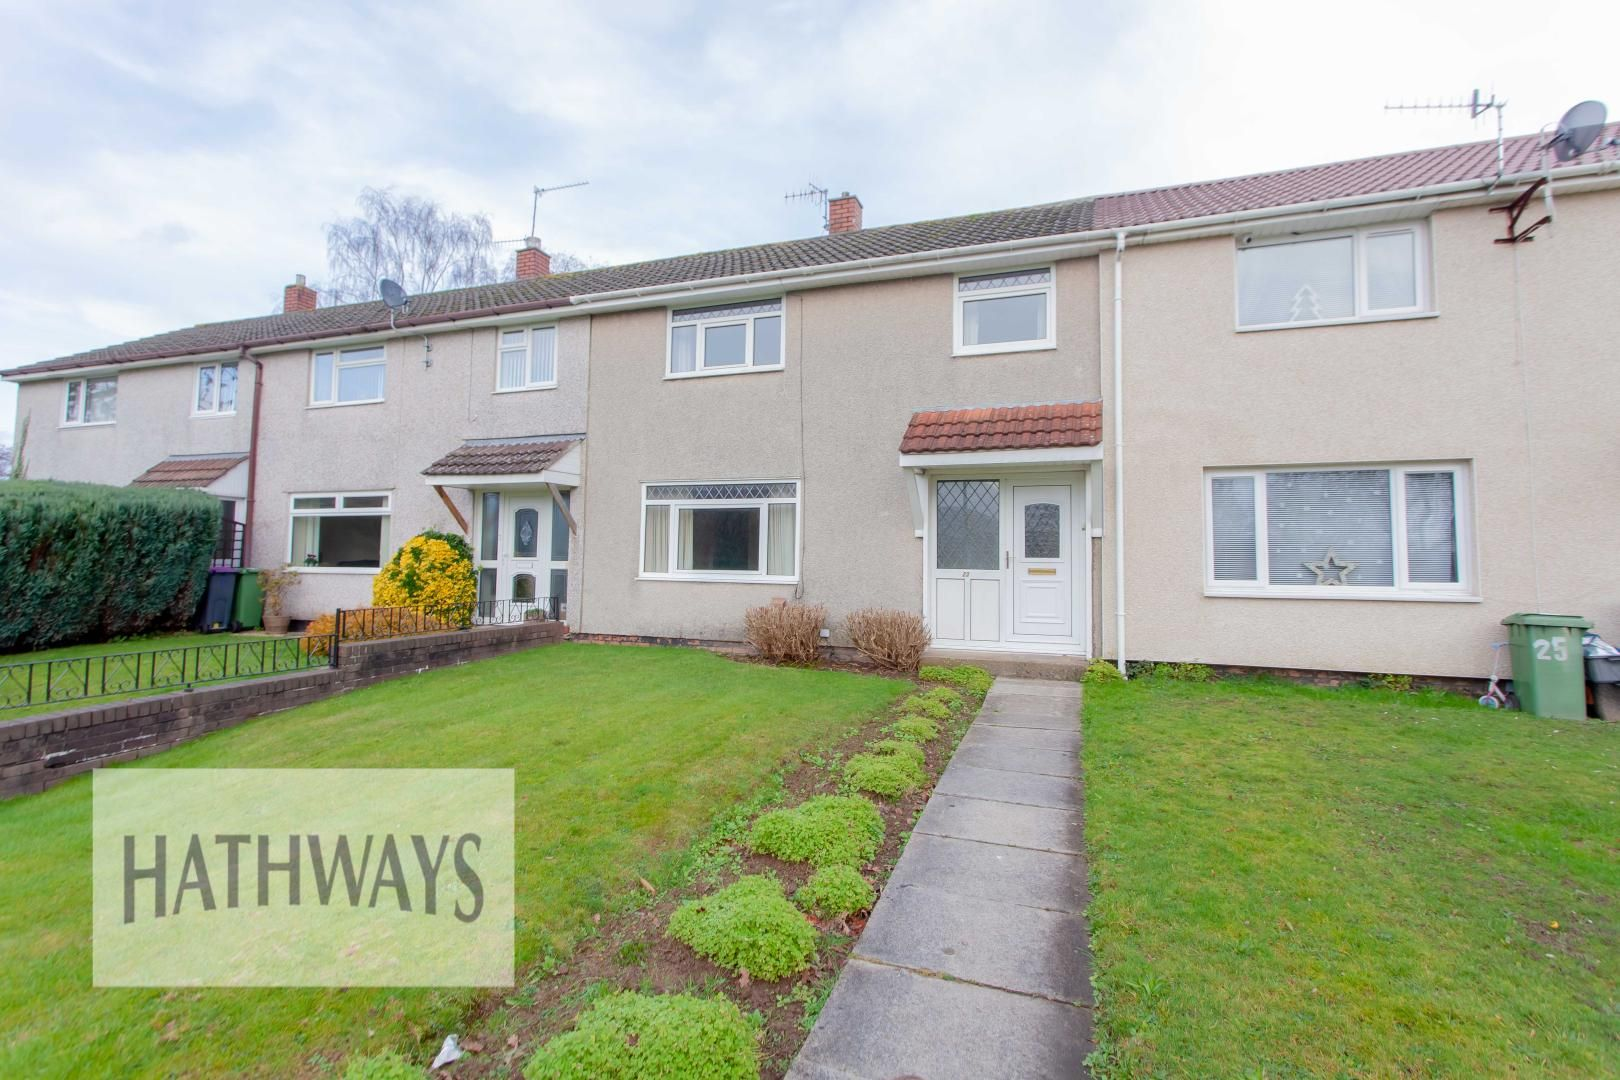 3 bed house for sale in Five Oaks Lane - Property Image 1